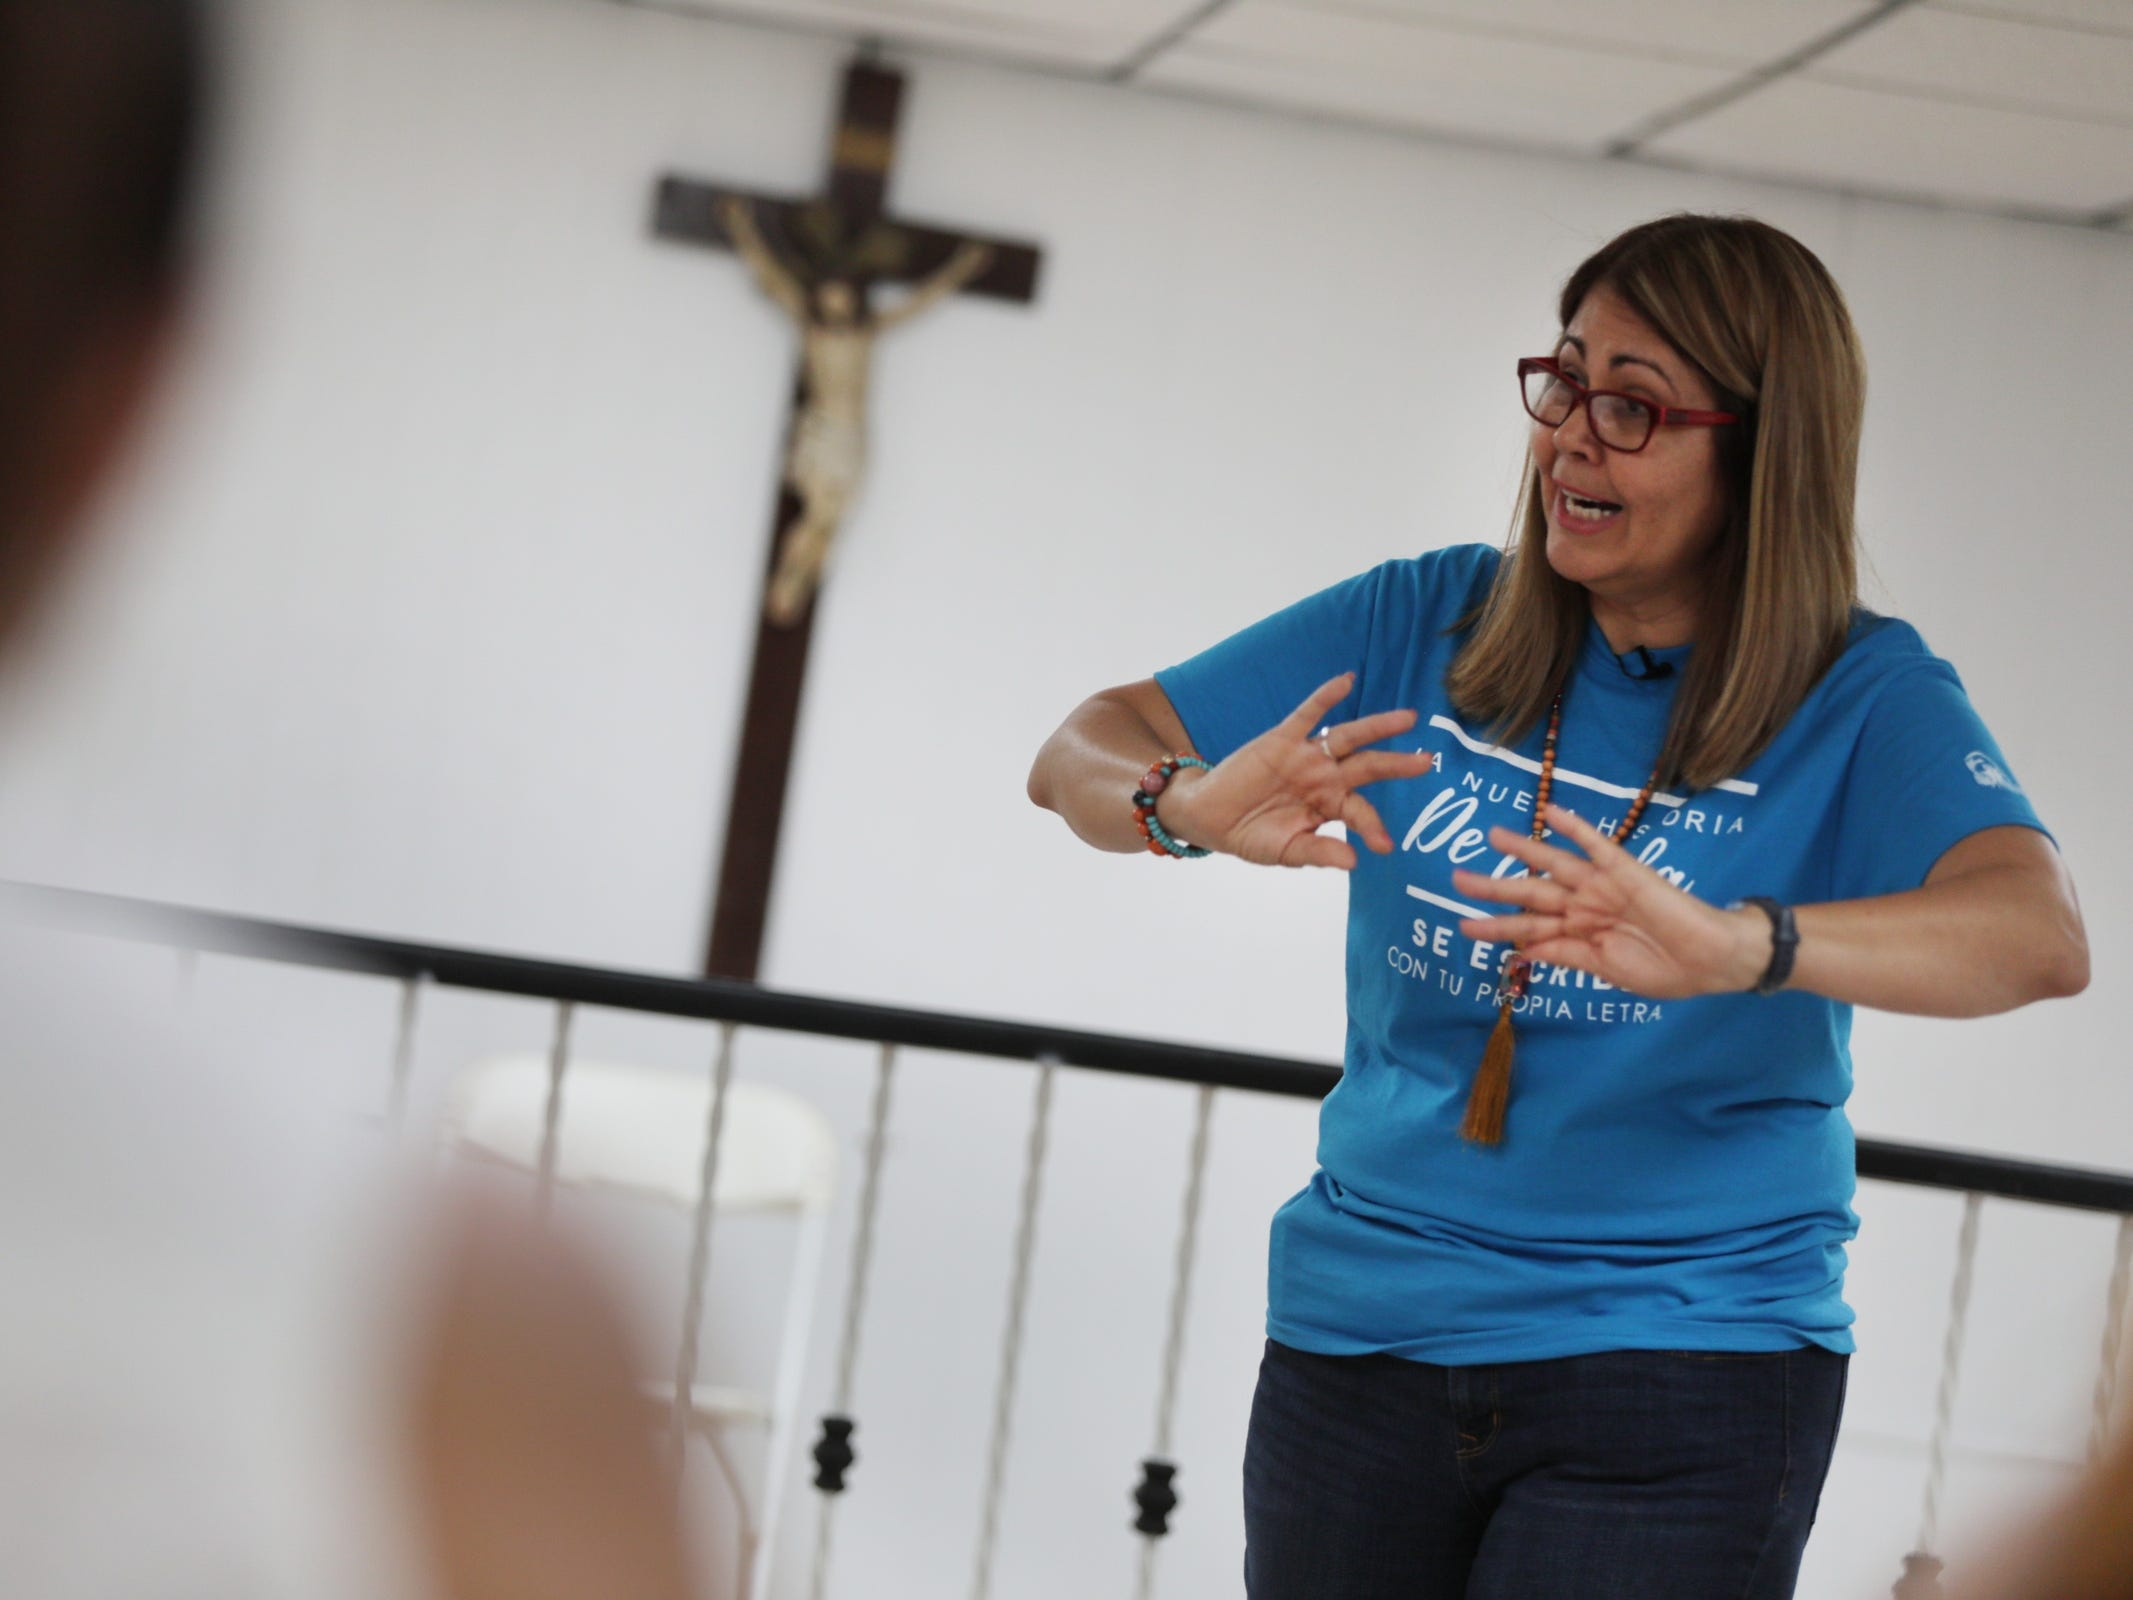 """Lourdes Ortiz, a Social Worker and director of Instituto para el Desarrollo Humano a Plenitud leads a workshop called """"Managing your emotions after Maria"""" in Utuado, Puerto Rico on Friday, July 27, 2018."""